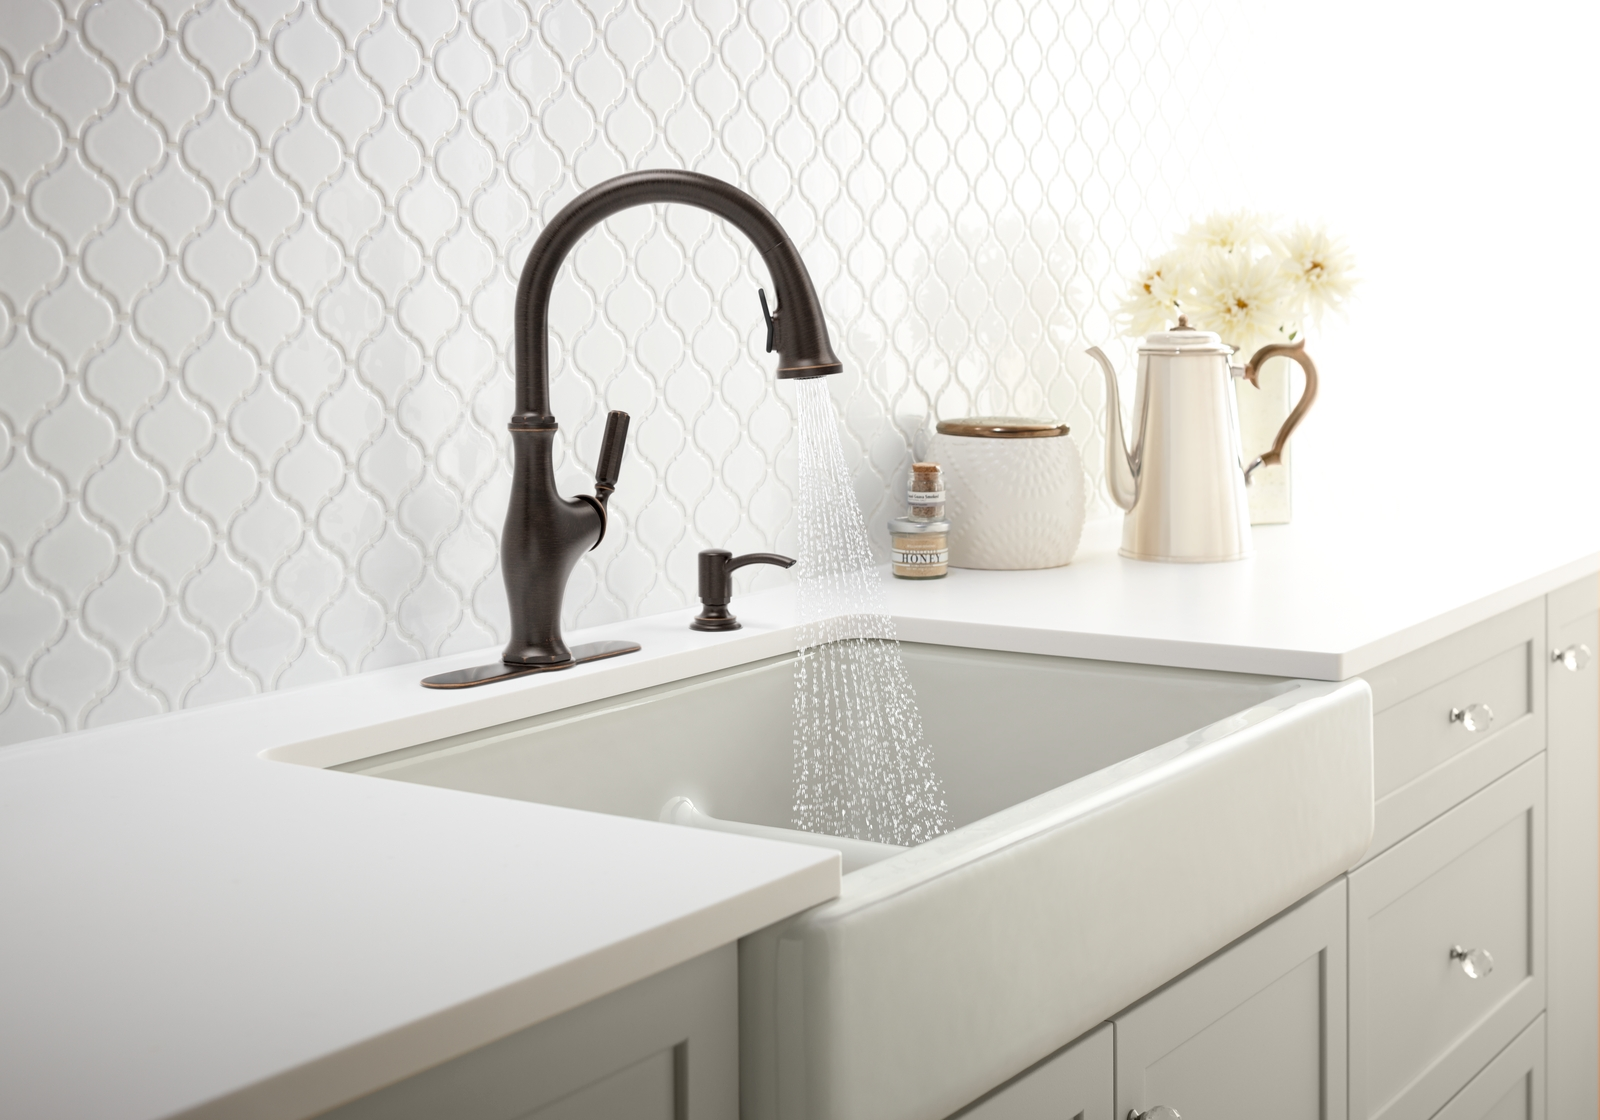 farmhouse kitchen faucet farmhouse faucet kitchen I cannot choose which faucet is going to look the best in my farmhouse kitchen